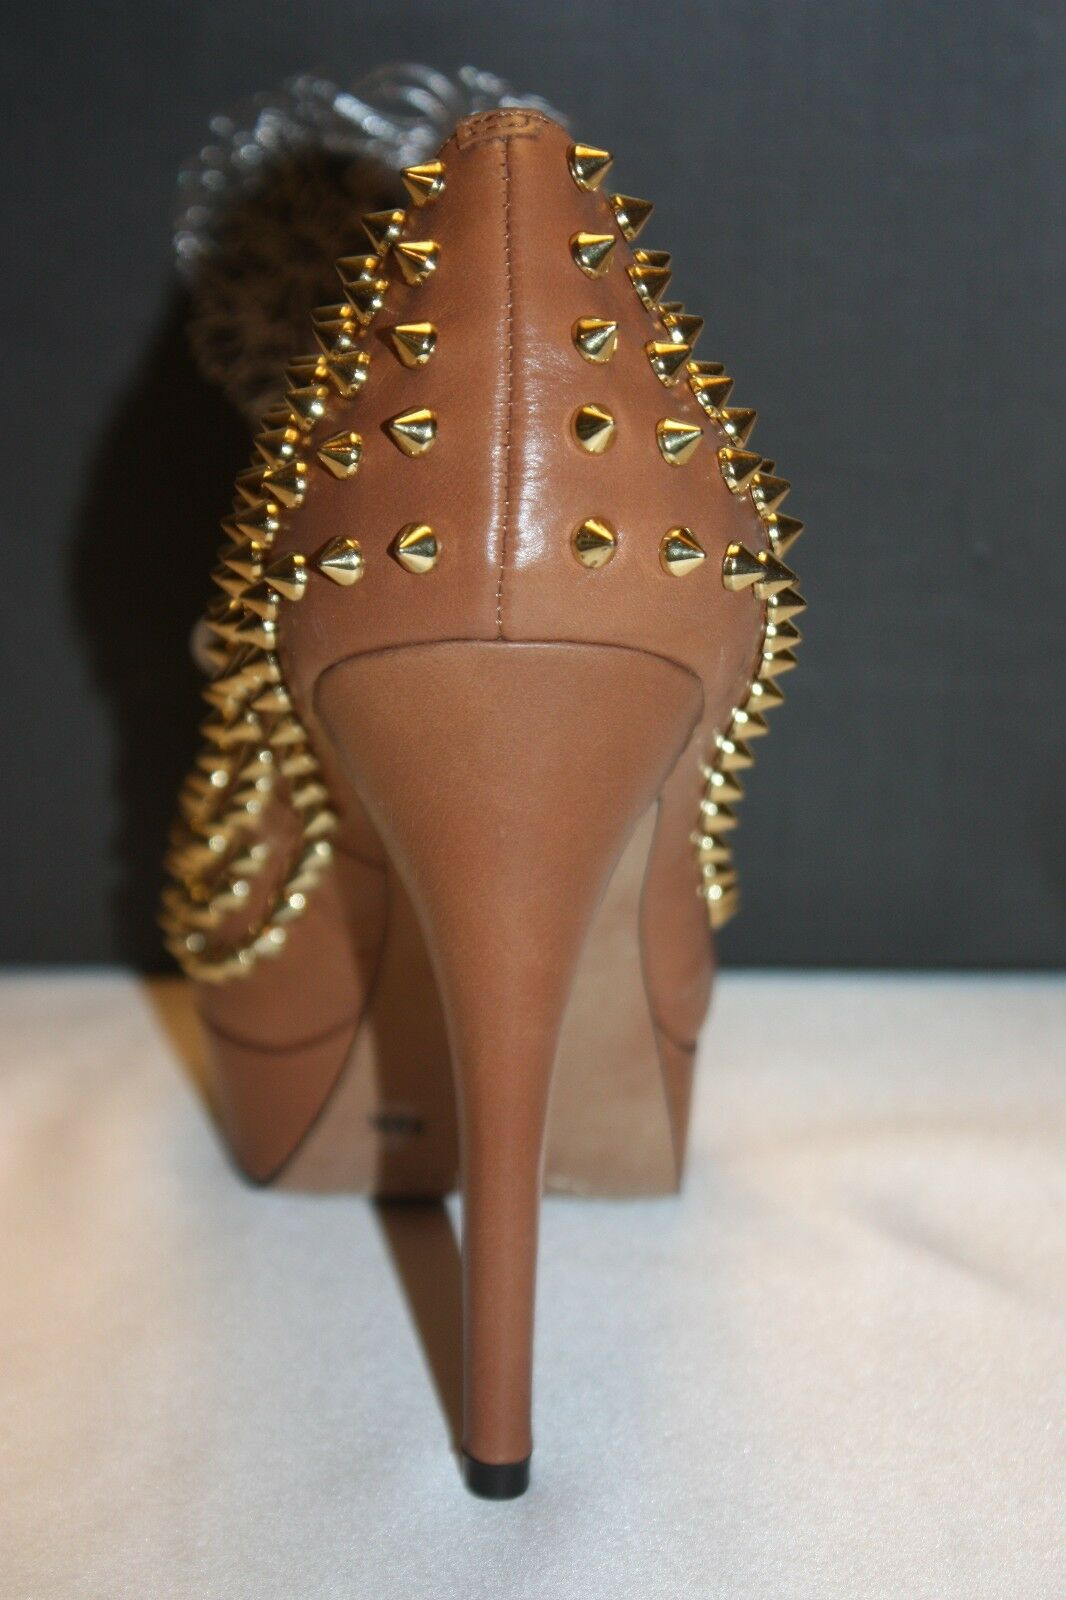 NEW CAMUTO  NIB  VINCE CAMUTO NEW Braun Fudge Leder MADELYN Spike Platform Pumps 9.5 198 9510df